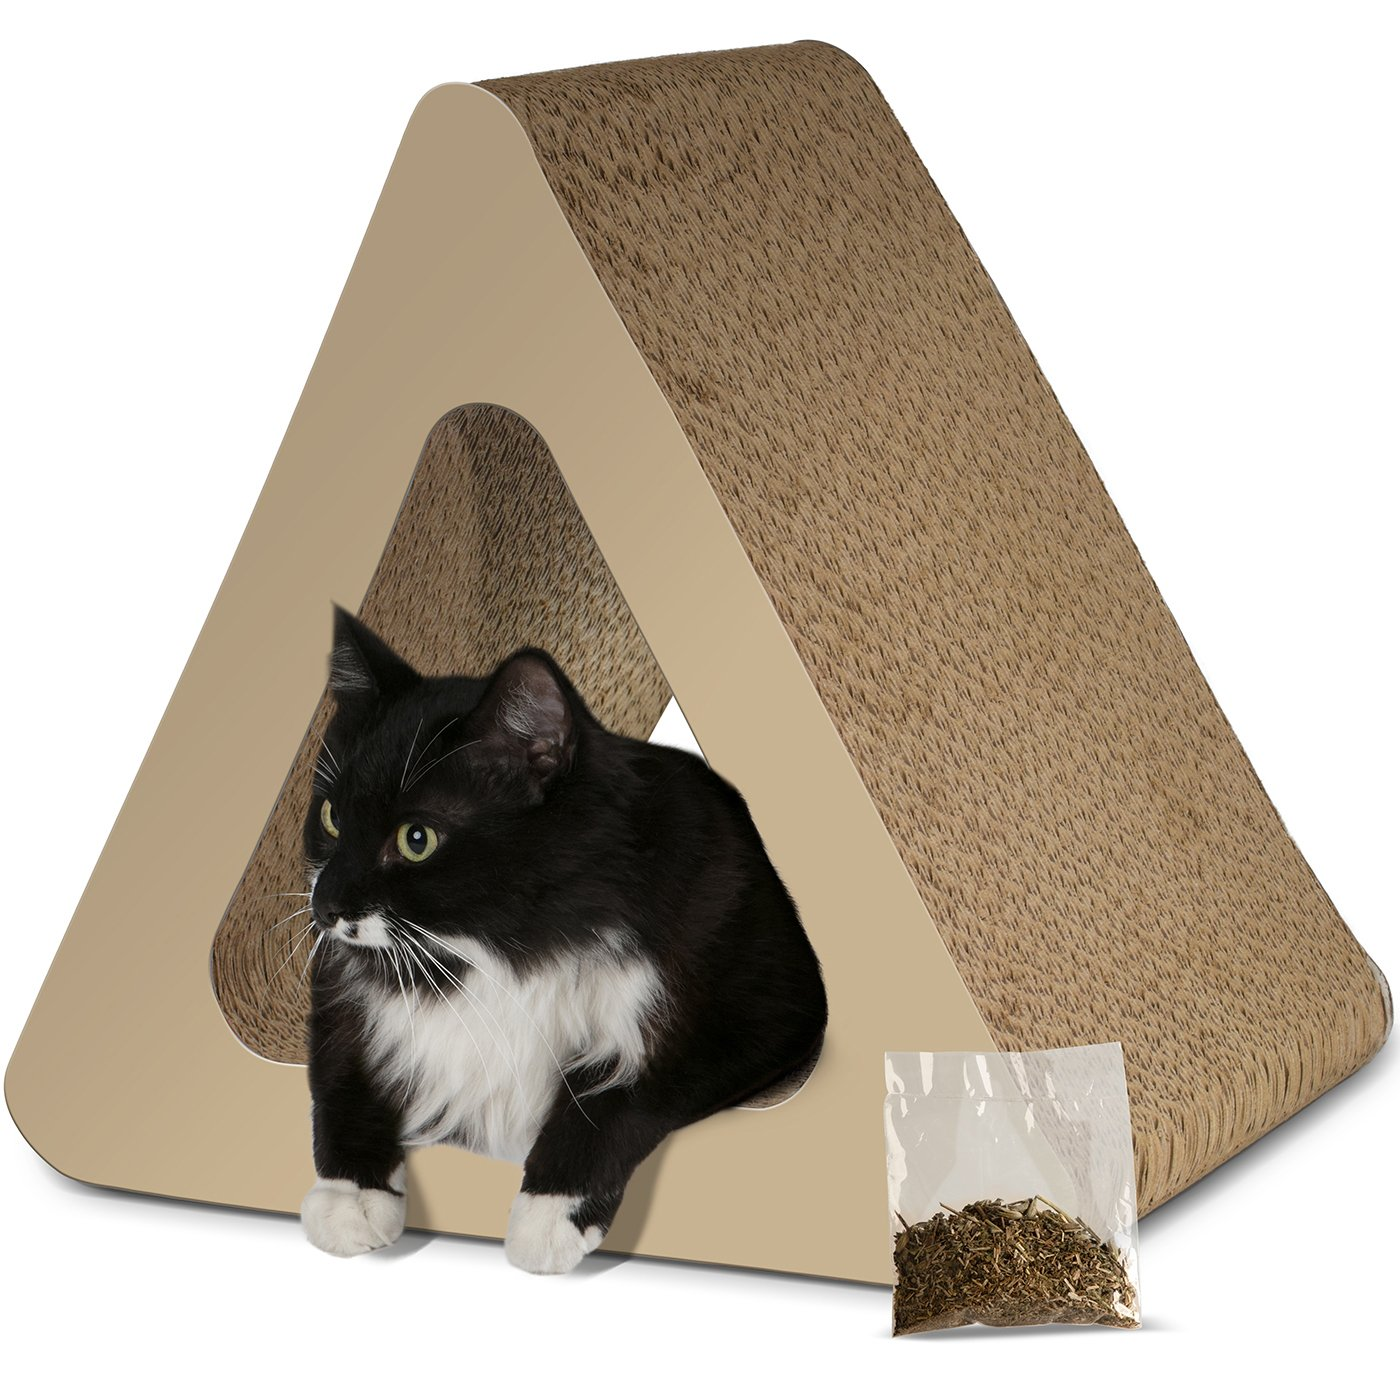 Paws & Pals 3-Sided Vertical Cat Scratcher Post - Different Cardboard Scratching Triangle Angles with Catnip - Beige by Paws & Pals